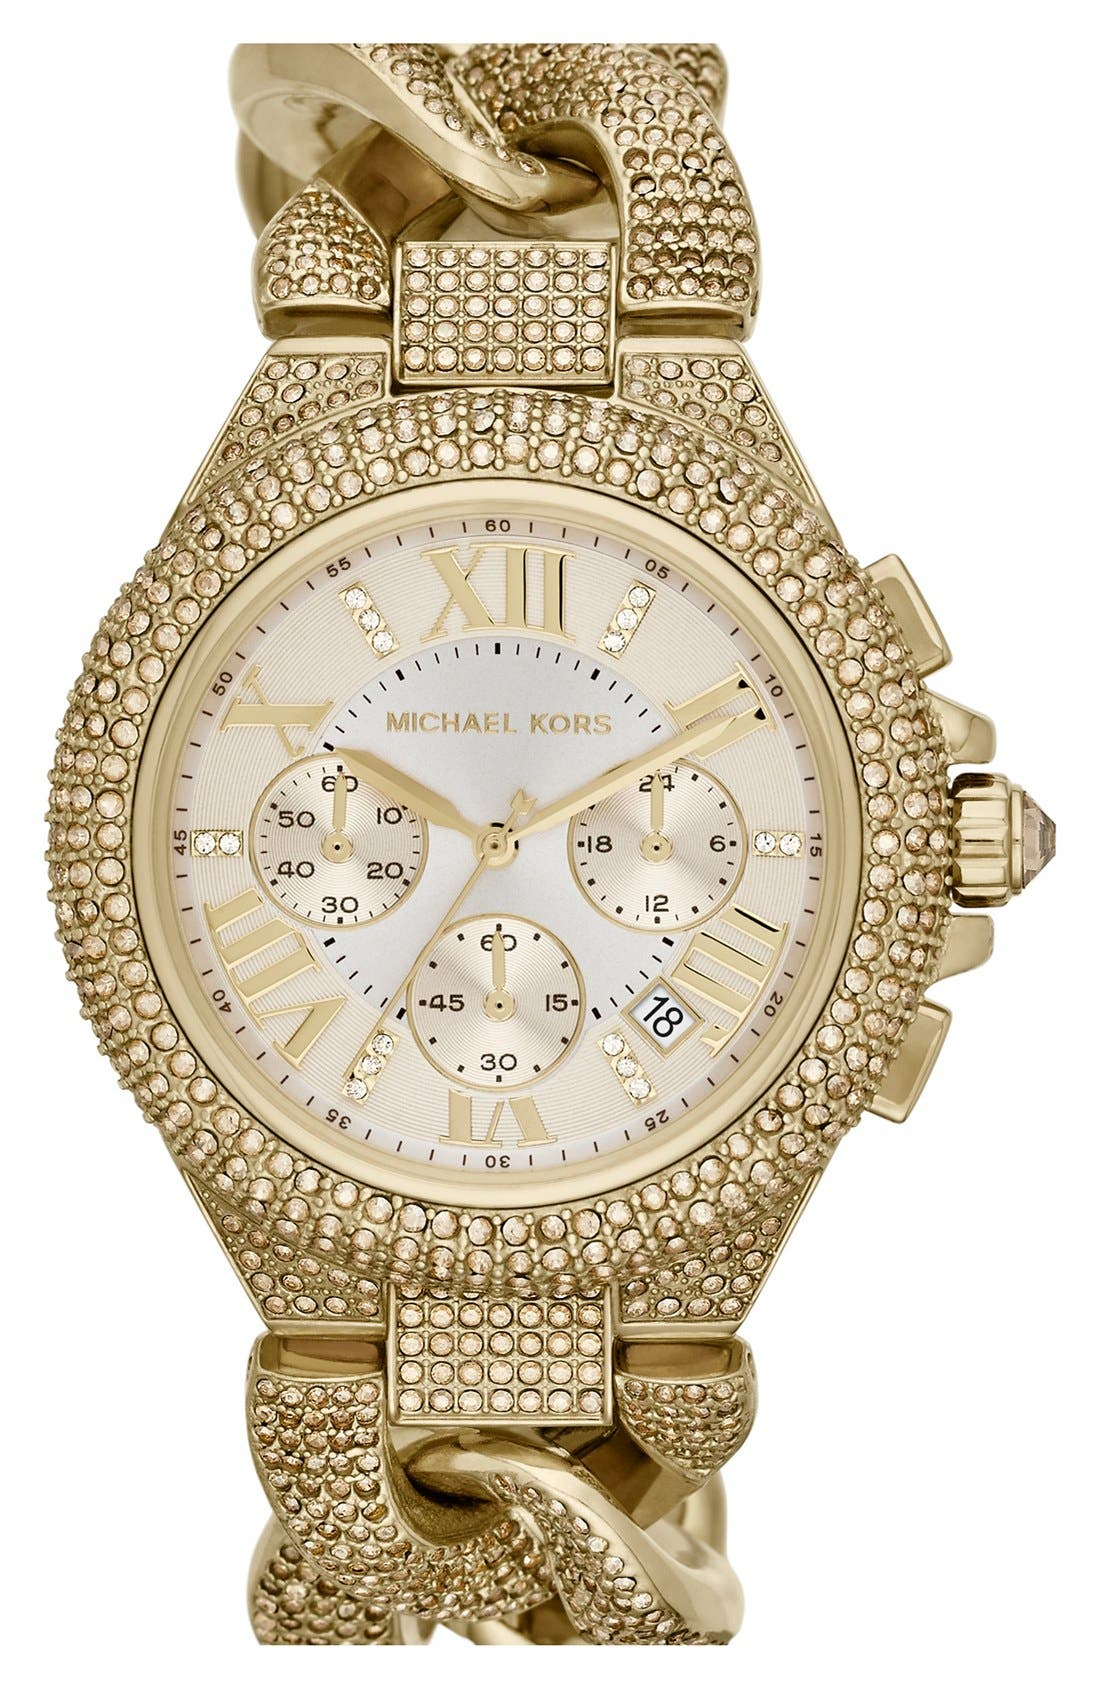 Main Image - Michael Kors 'Camille' Crystal Encrusted Chain Link Watch, 44mm